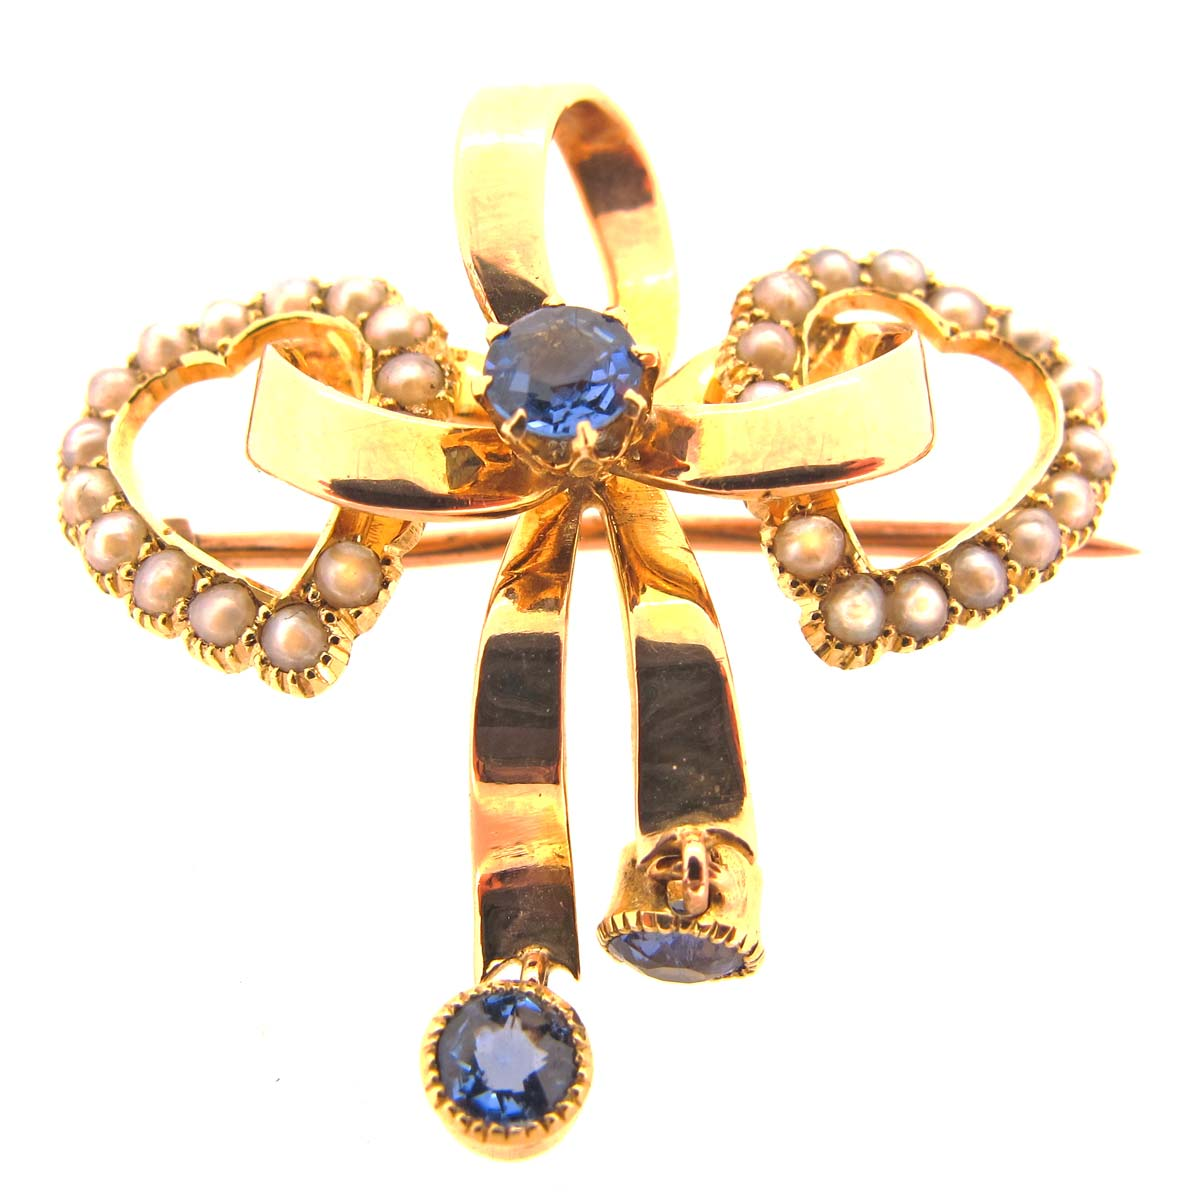 Antique Gold, Sapphire & Pearl Bow & Heart Brooch